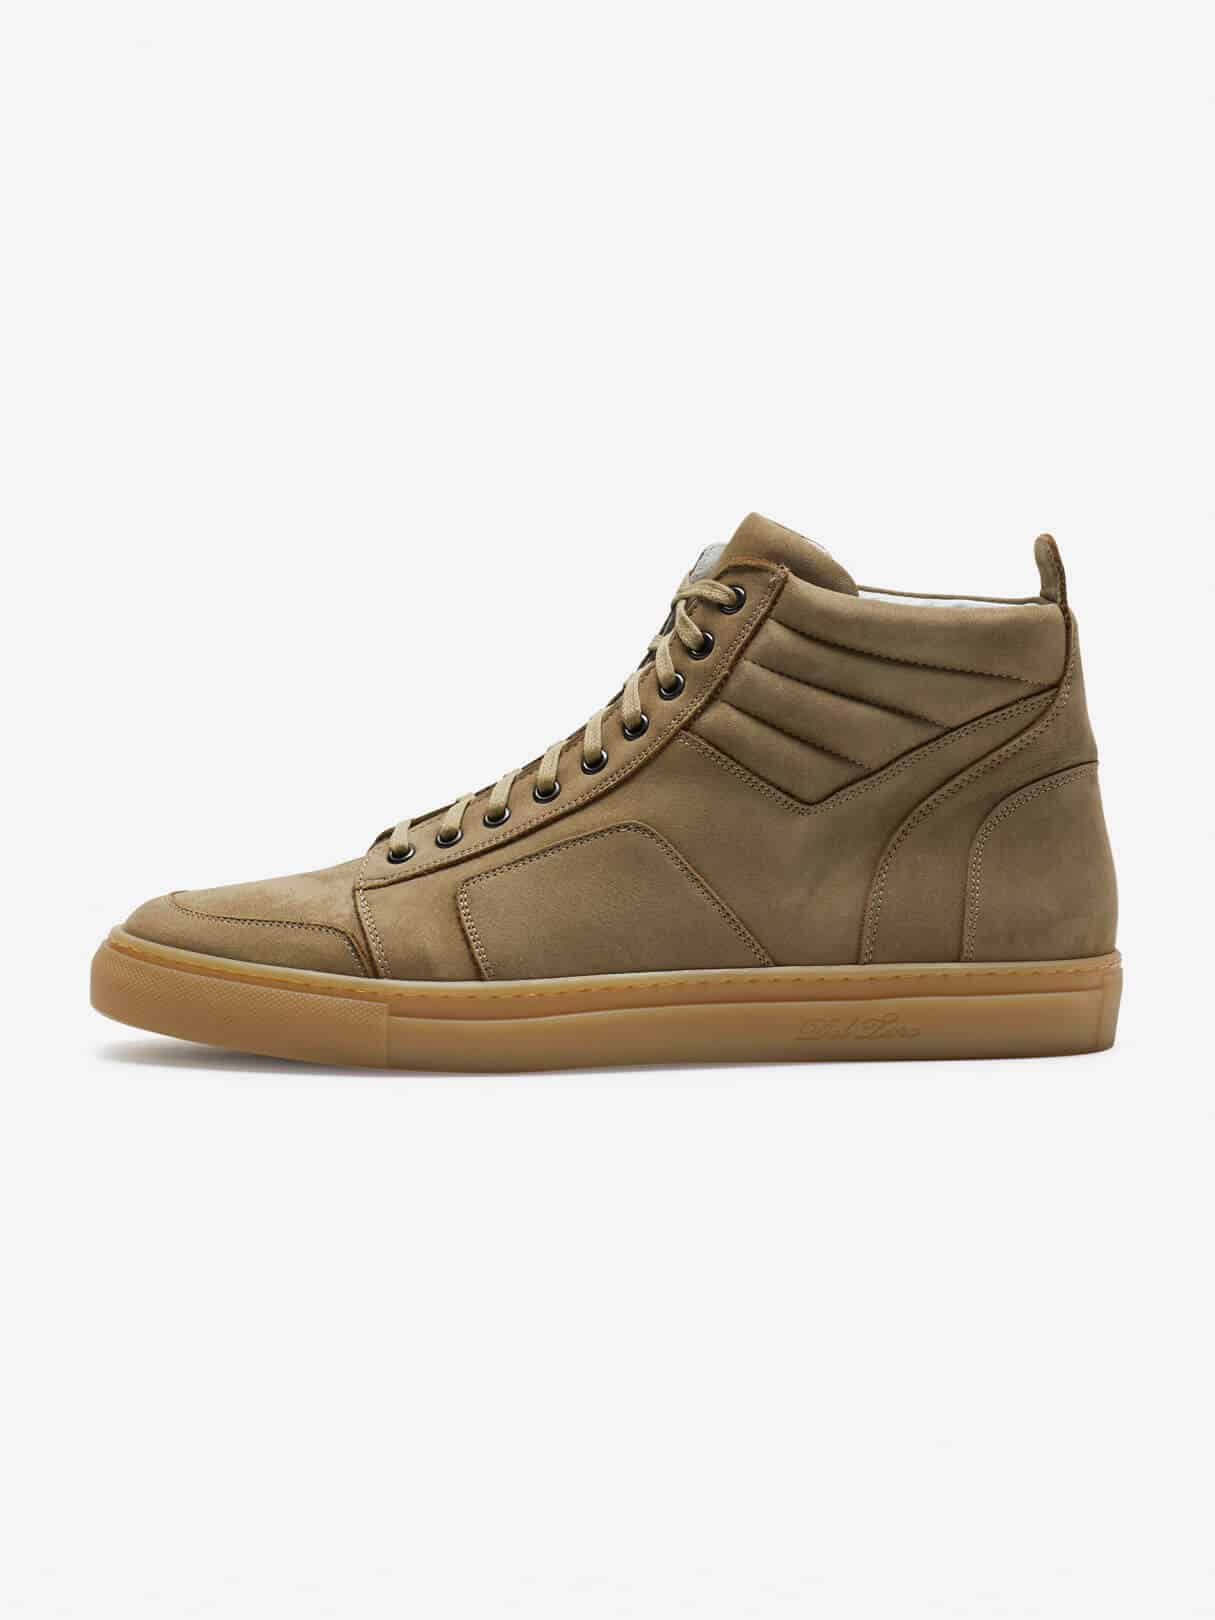 Del Toro Boxing Sneaker Brown Hero